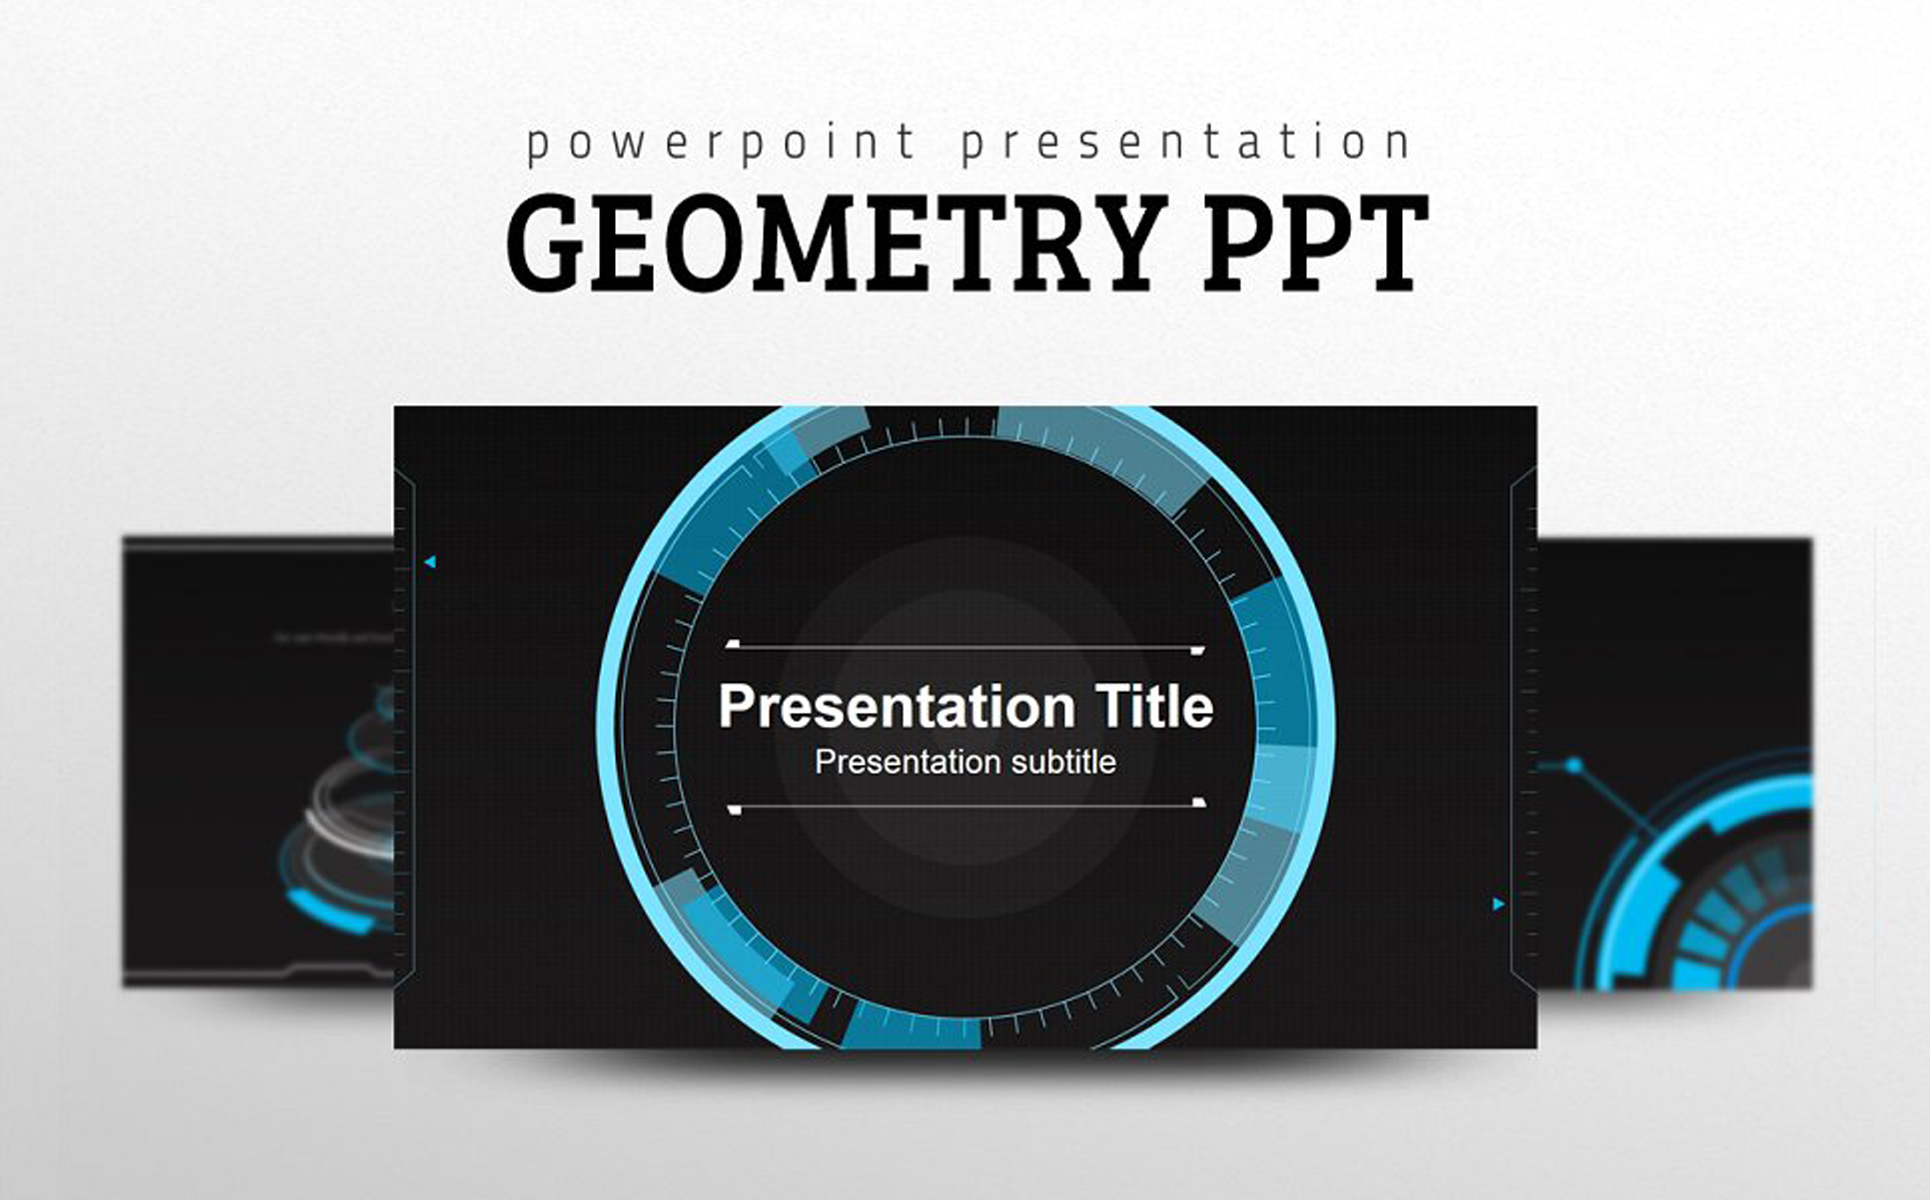 Geometry PPT PowerPoint Template